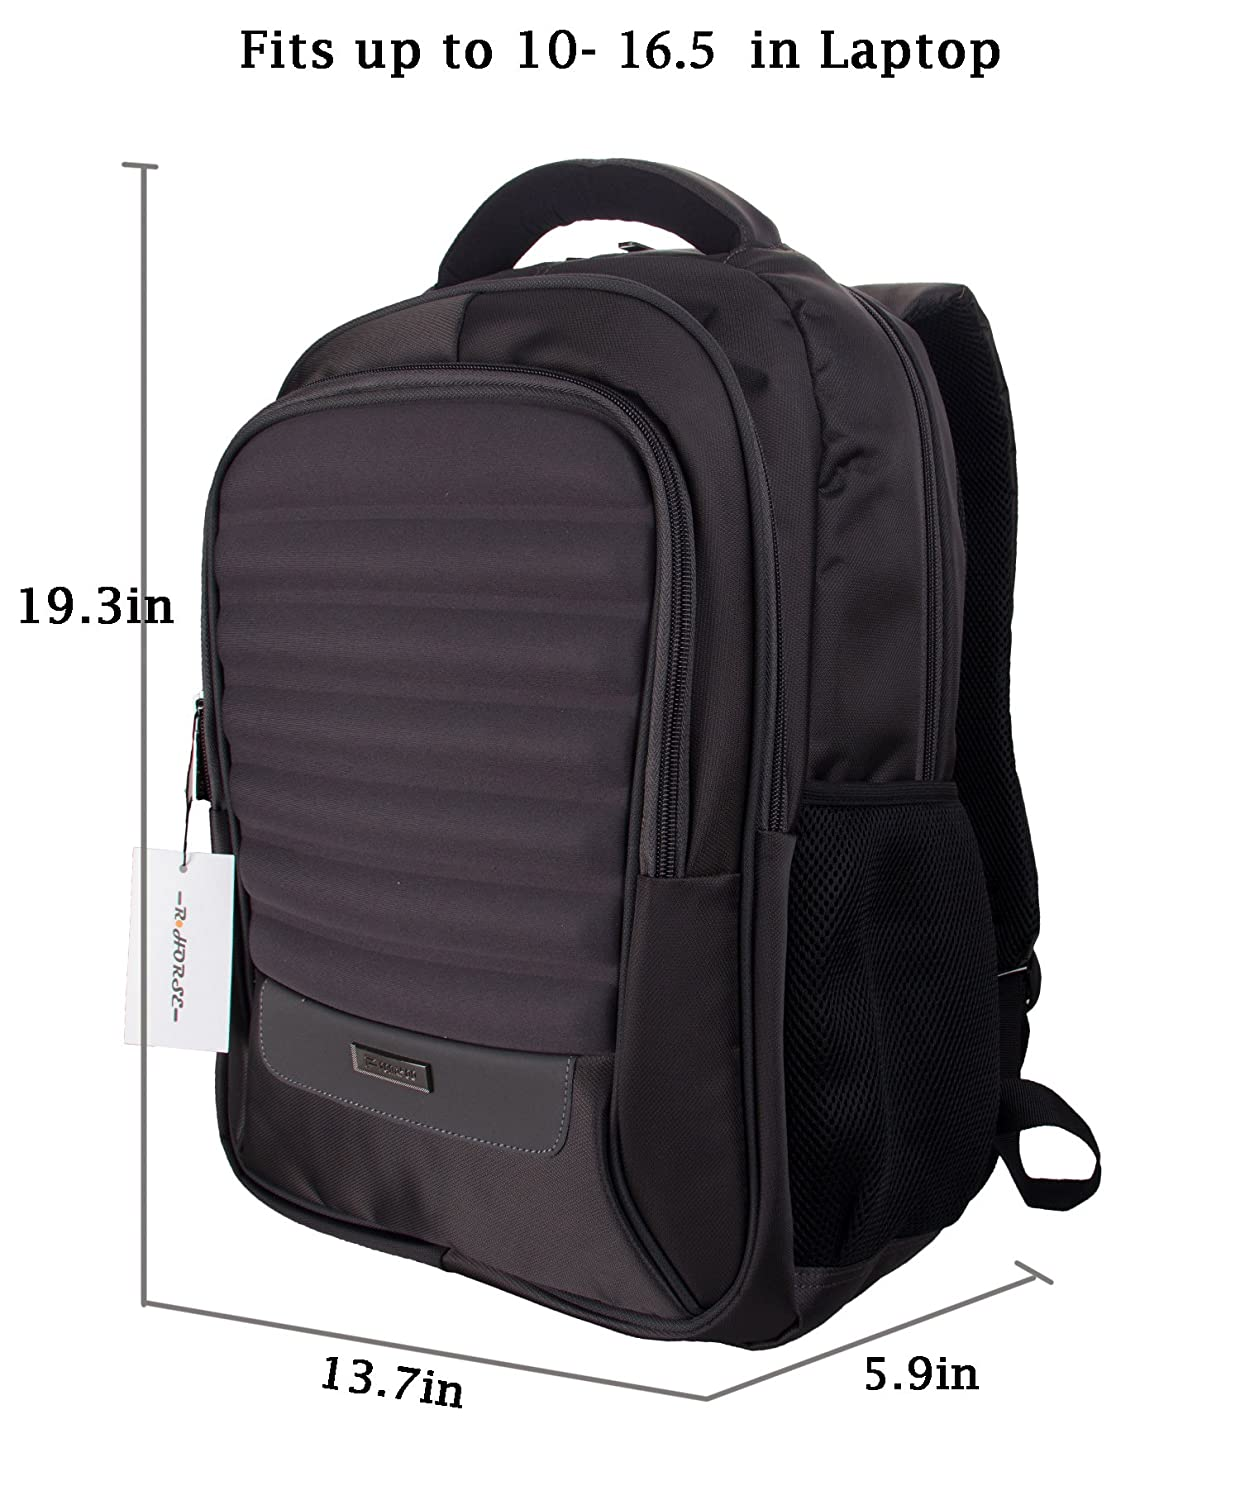 Amazon.com: R Horse 16.5 Inch Backpack Laptop Bag Travel Rucksack ...